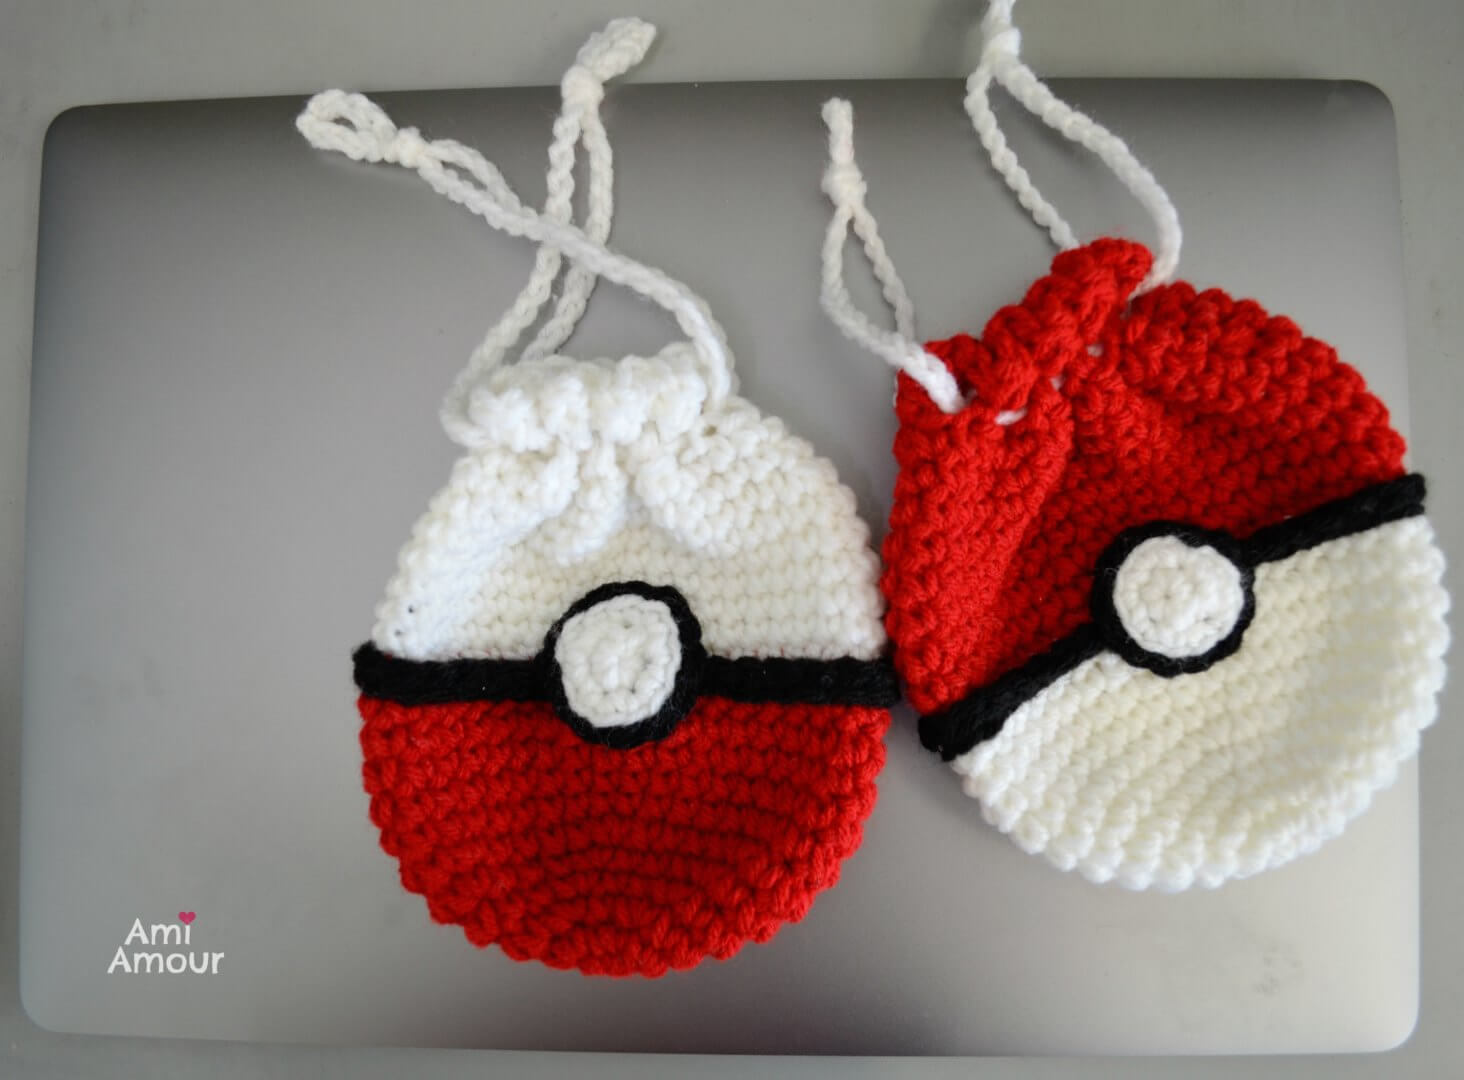 2 Crochet Pokeball Bags in opposite colors